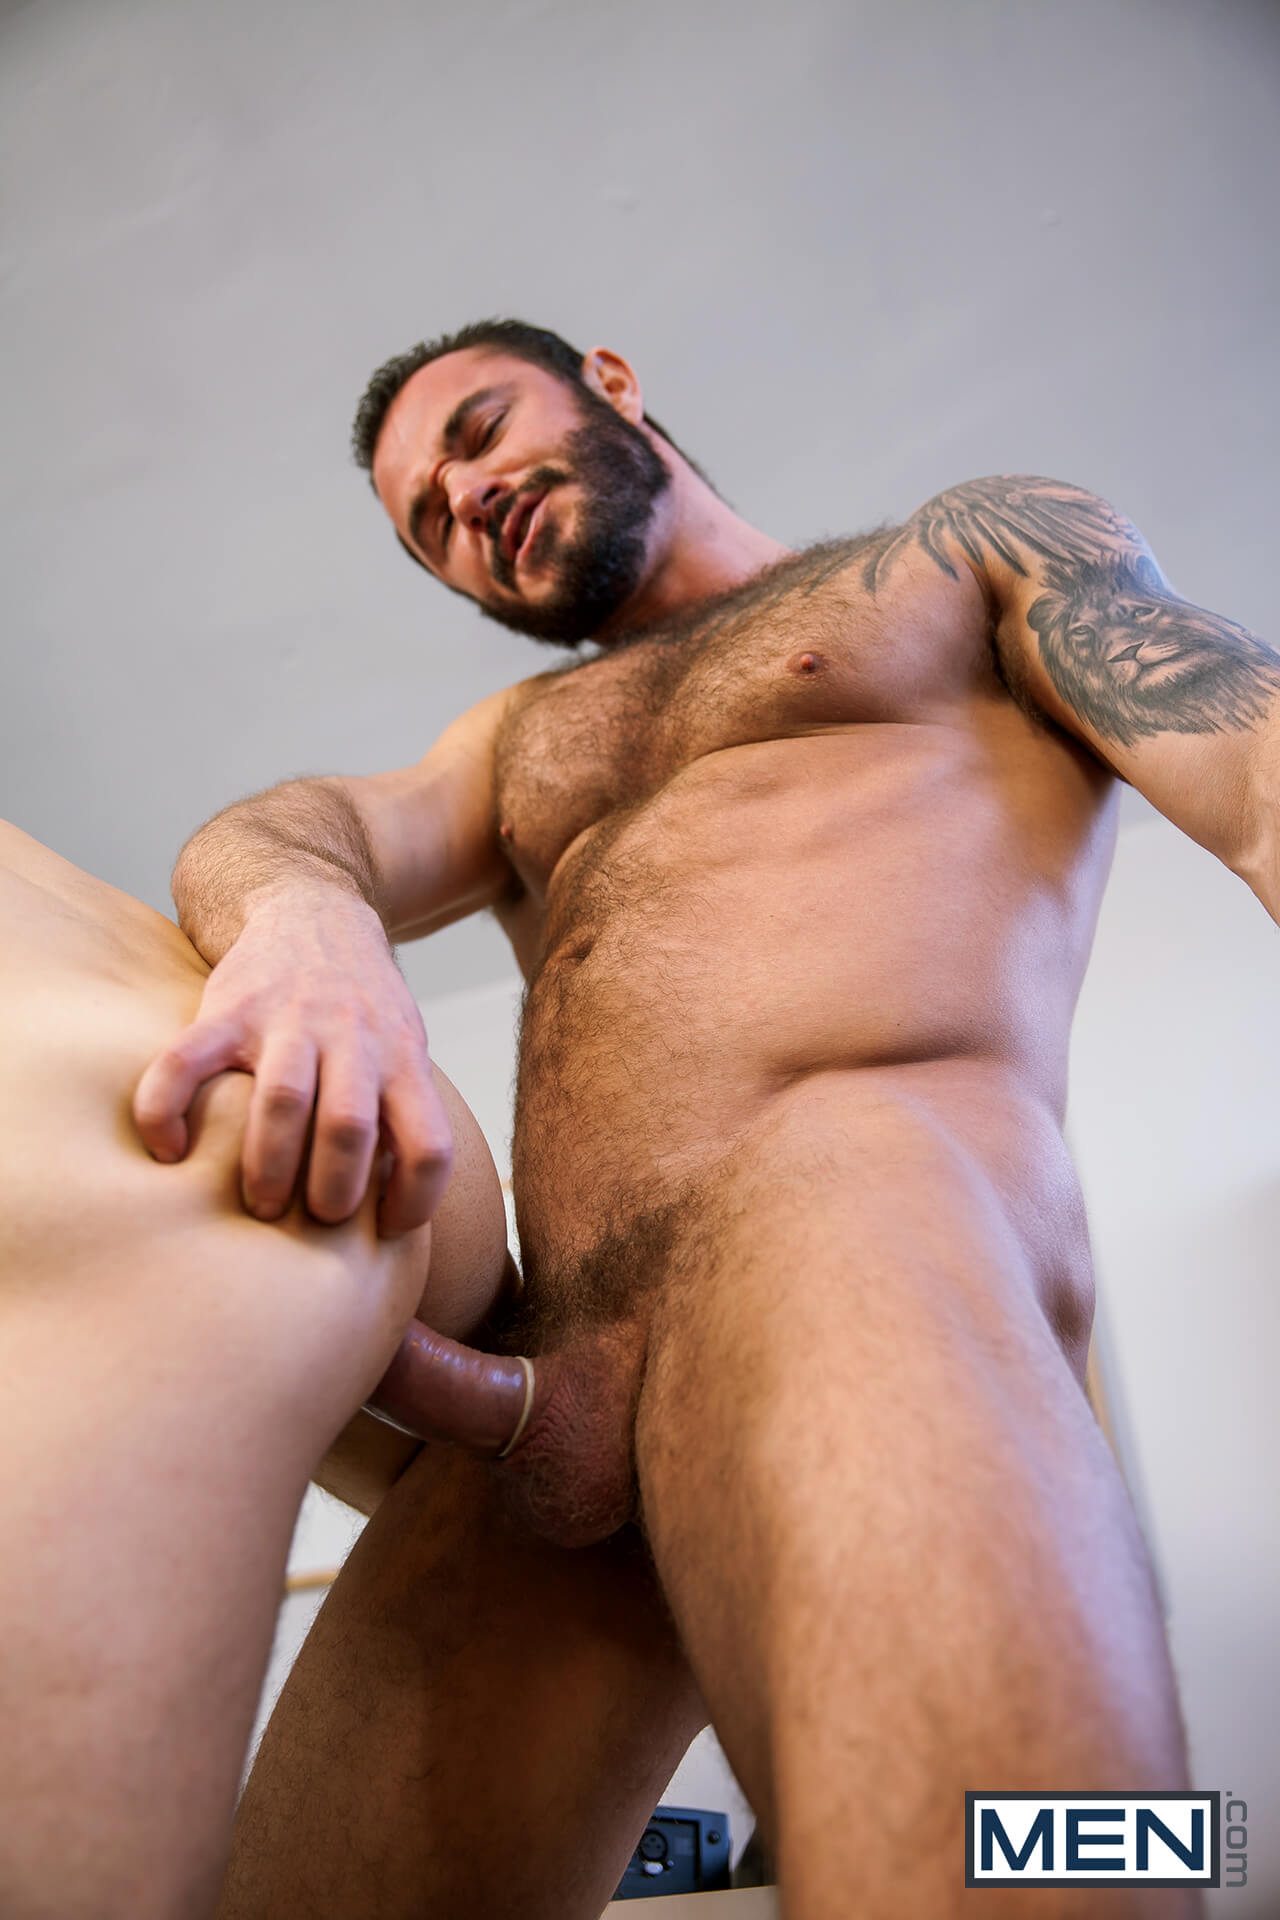 men drill my hole erase and rewind part 2 jessy ares pierre fitch gay porn blog image 20